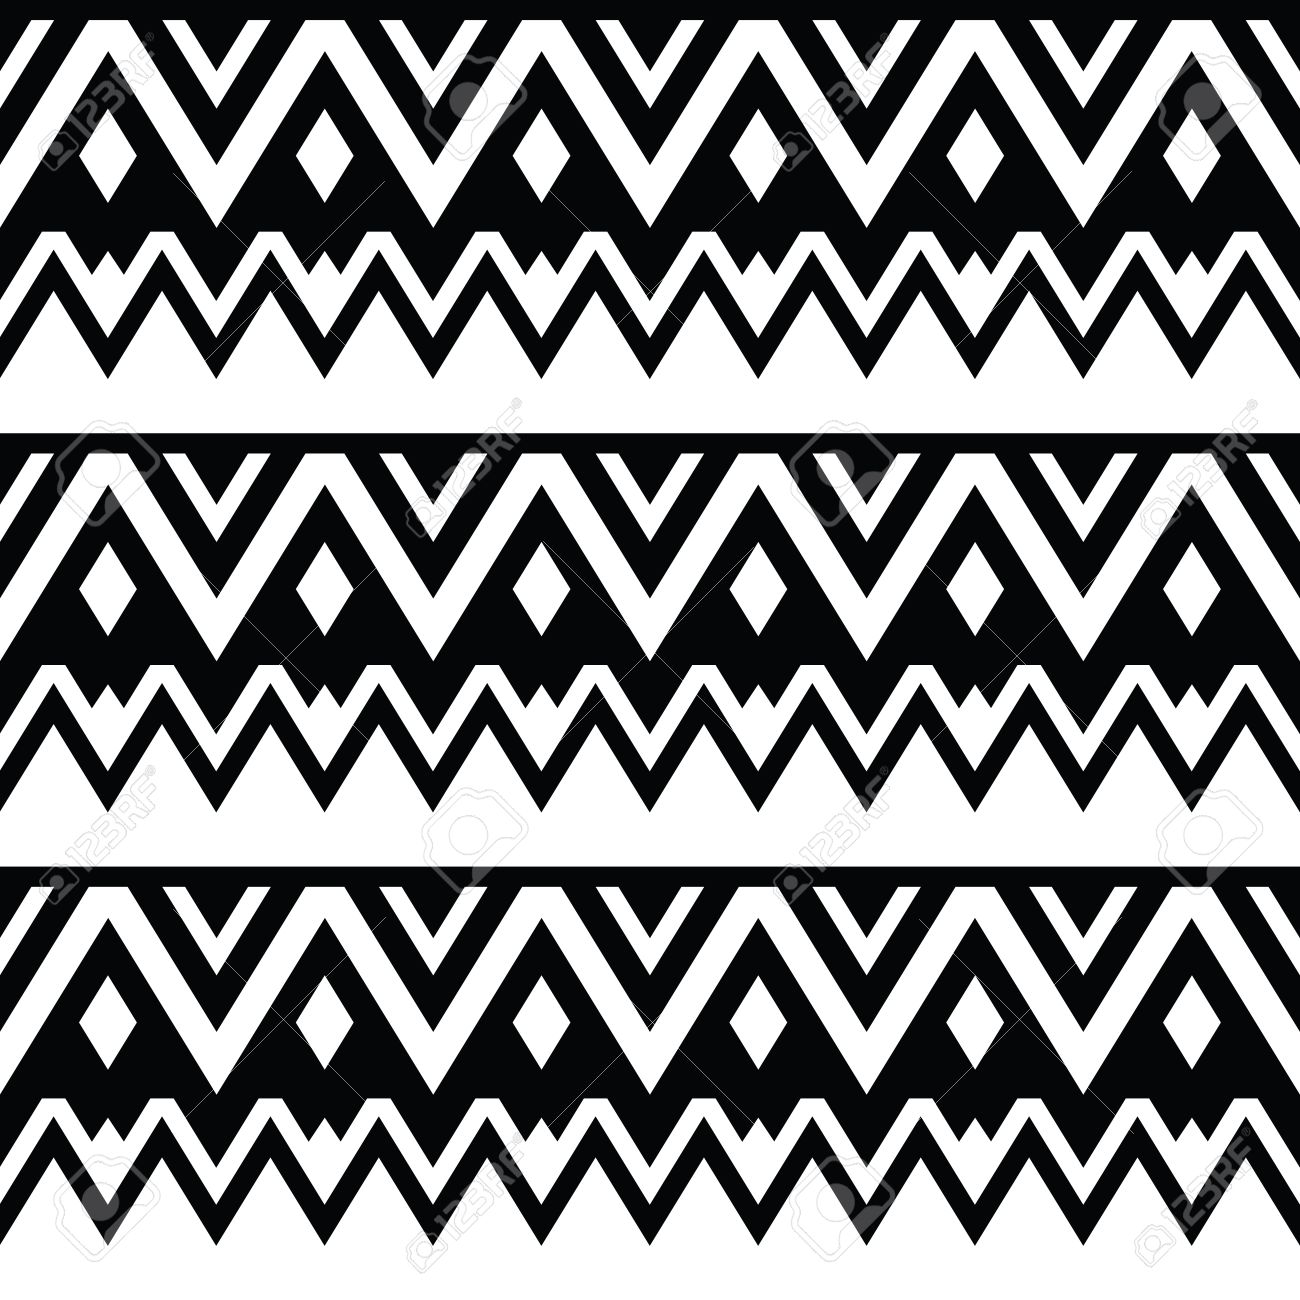 Background geometric mexican patterns seamless vector zigzag maya - Aztec Seamless Pattern Tribal Black And White Background Stock Vector 22778592